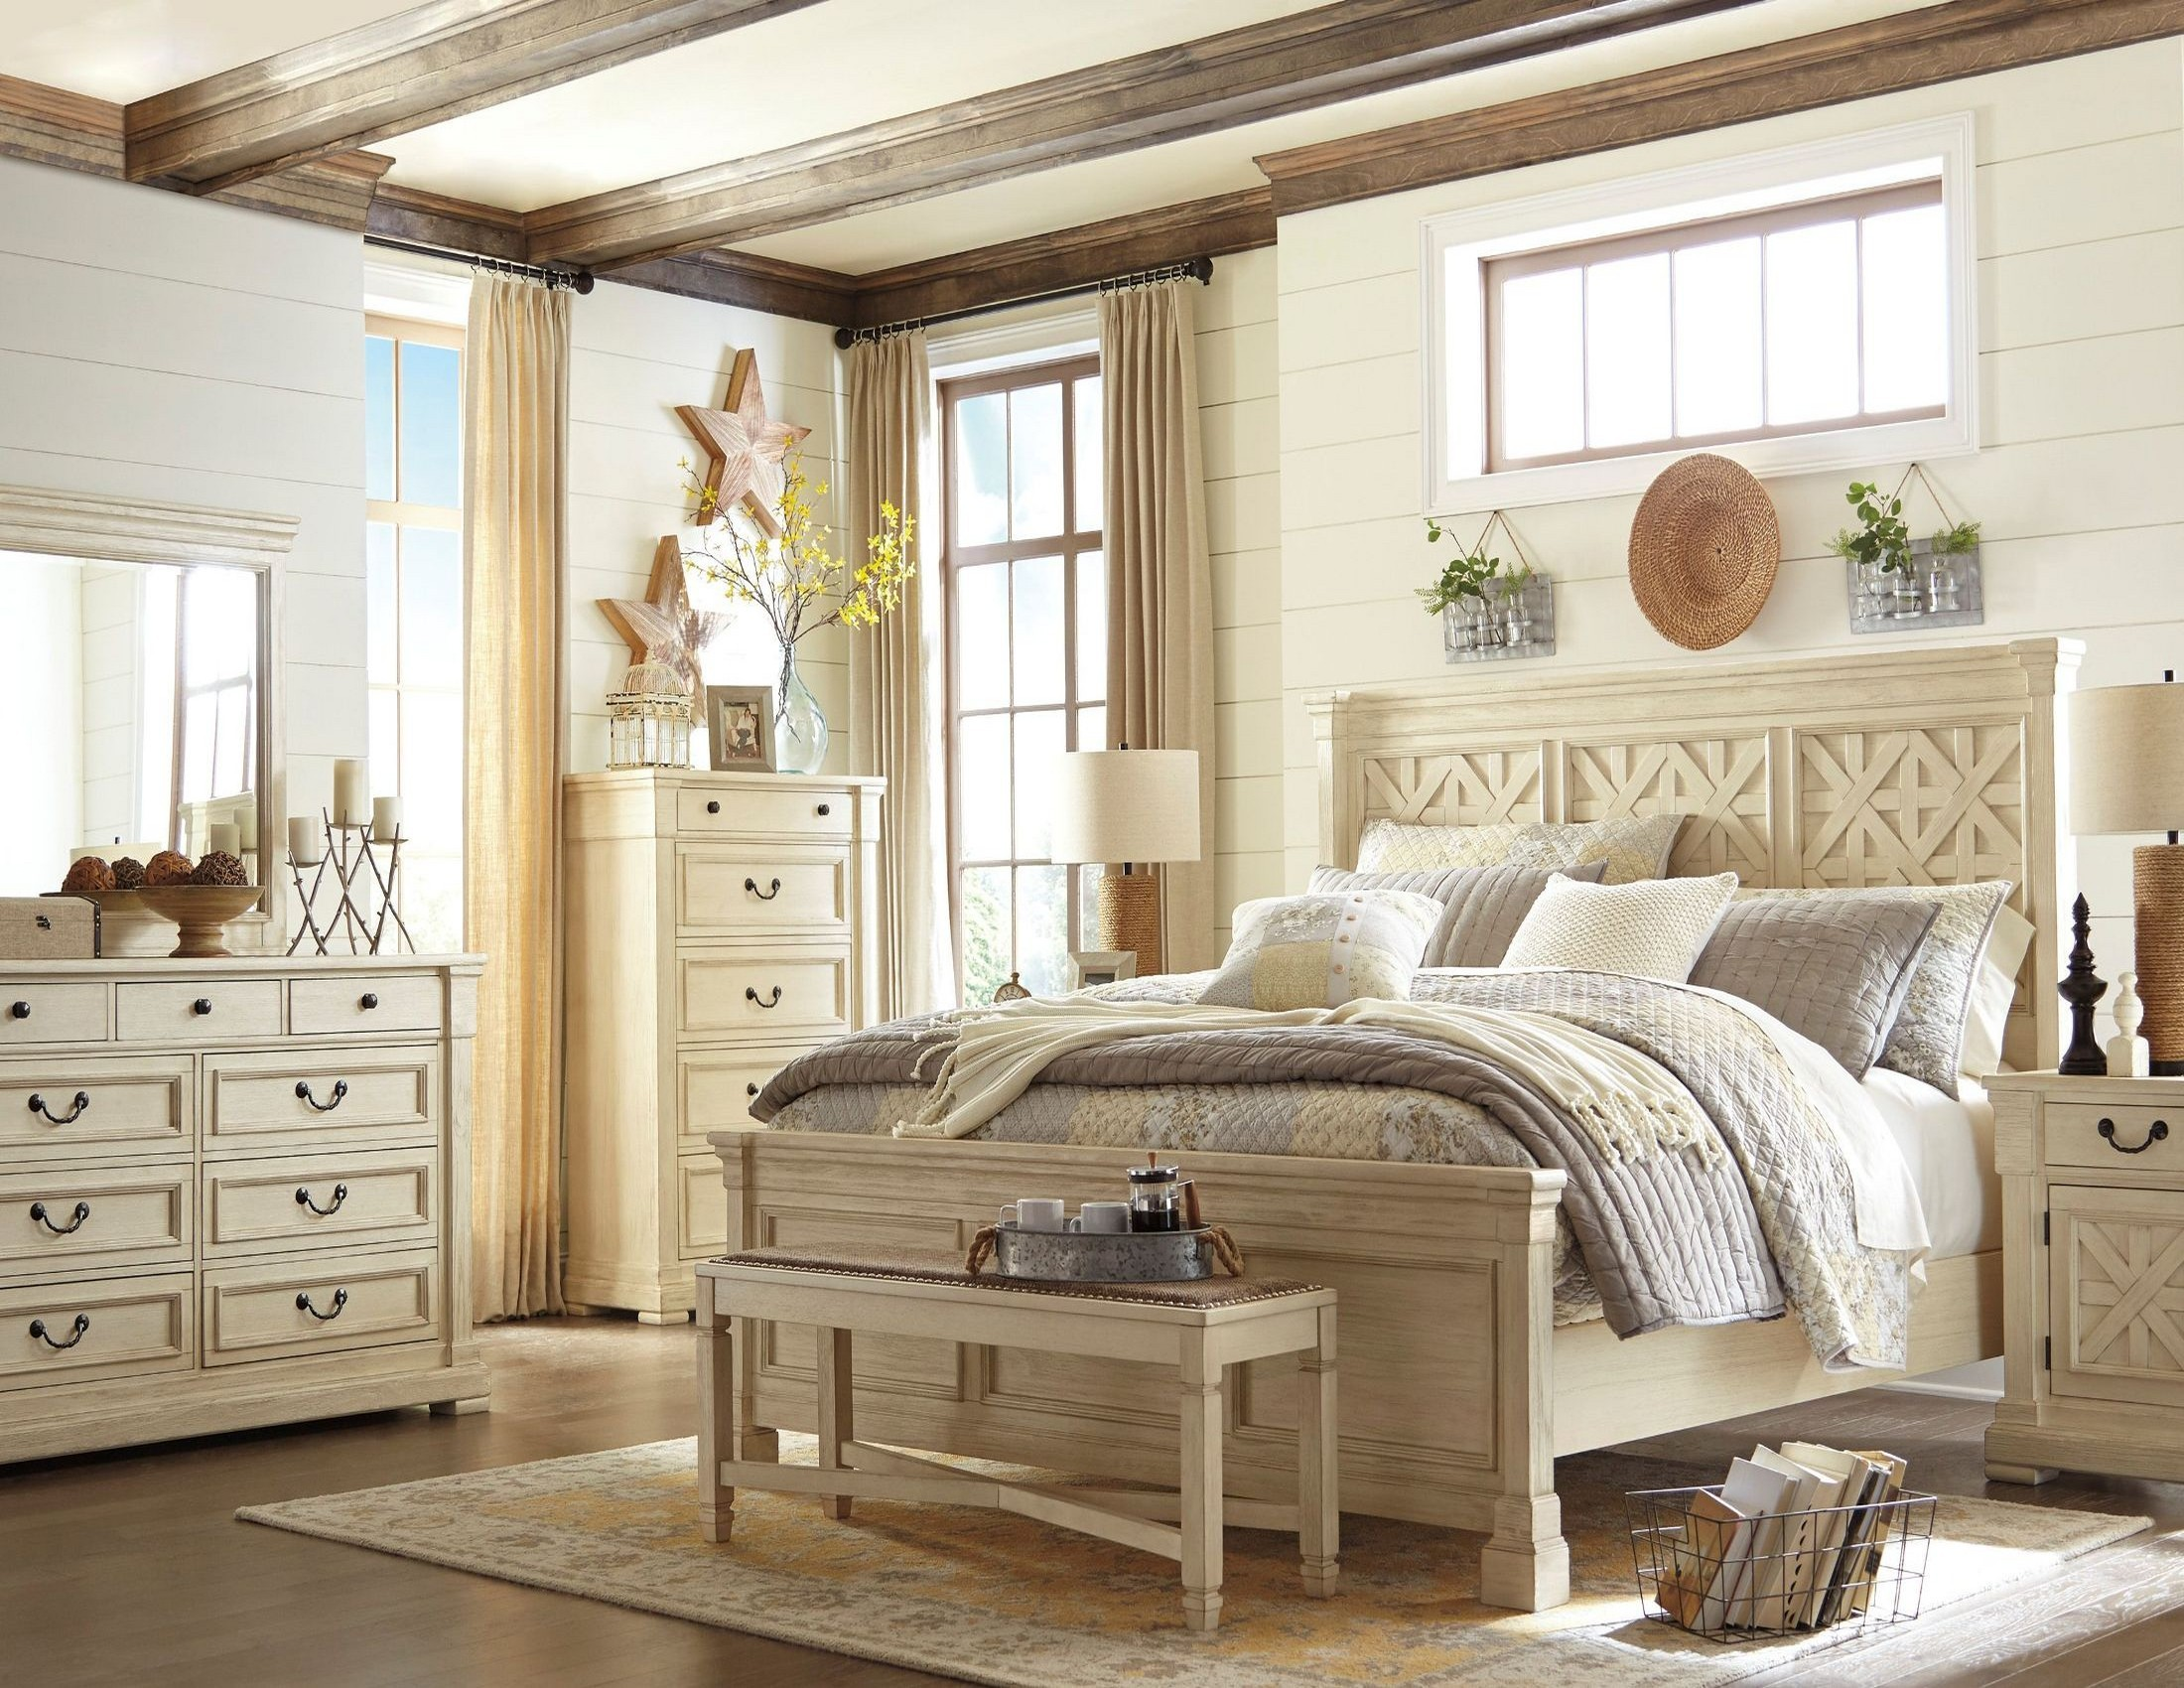 Bolanburg White Panel Bedroom Set from Ashley